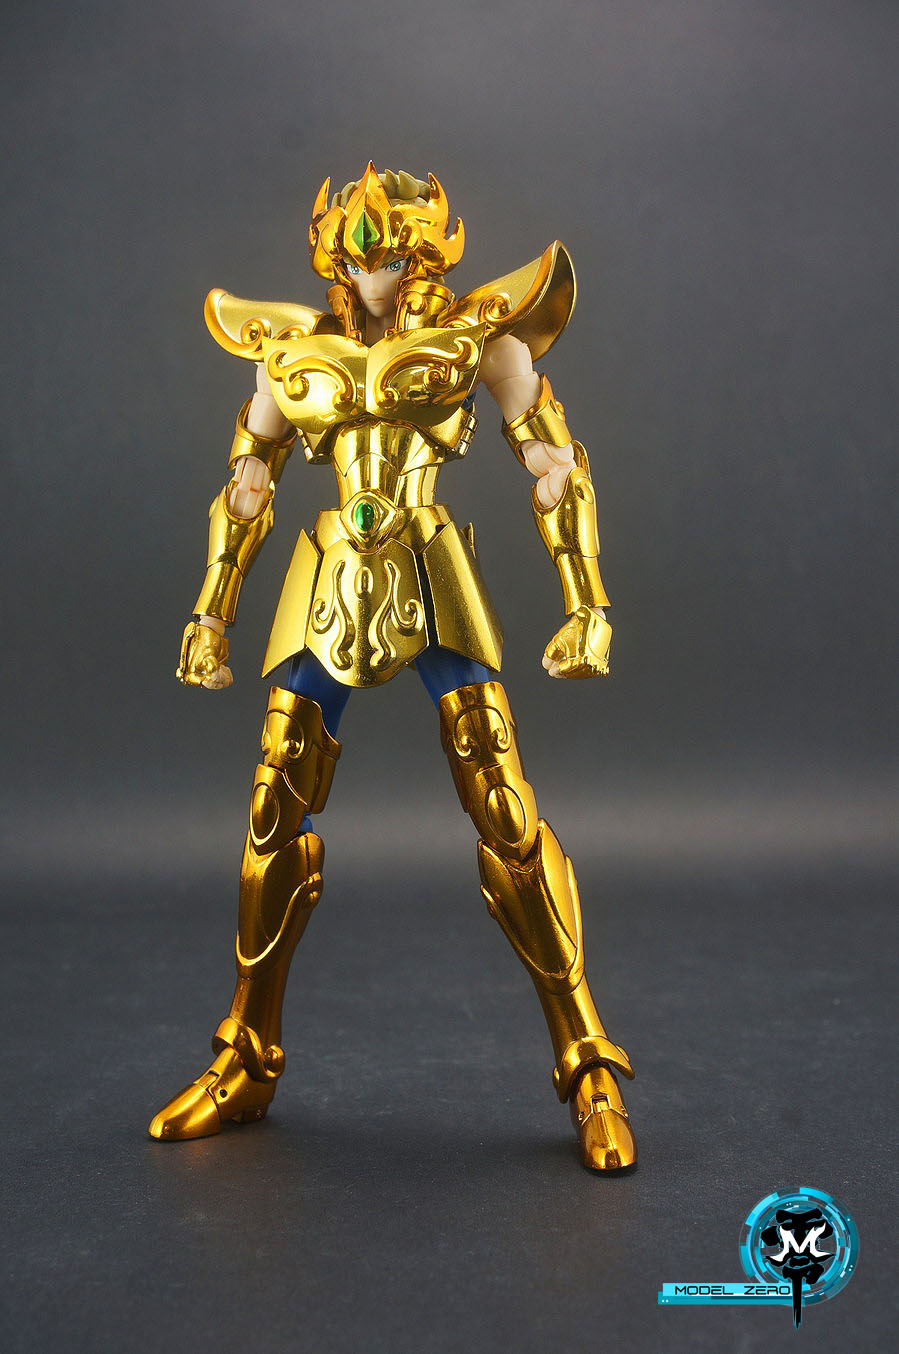 in stock Aioria LEO GOLD OCE Saint Seiya S-temple METAL CLUB model Myth EX Gold Saint Metal Cloth PayPal Payment in stock death mask cancer saint seiya myth cloth ex s temple st metal club mc ex toy release 2017 4 02 paypal payment